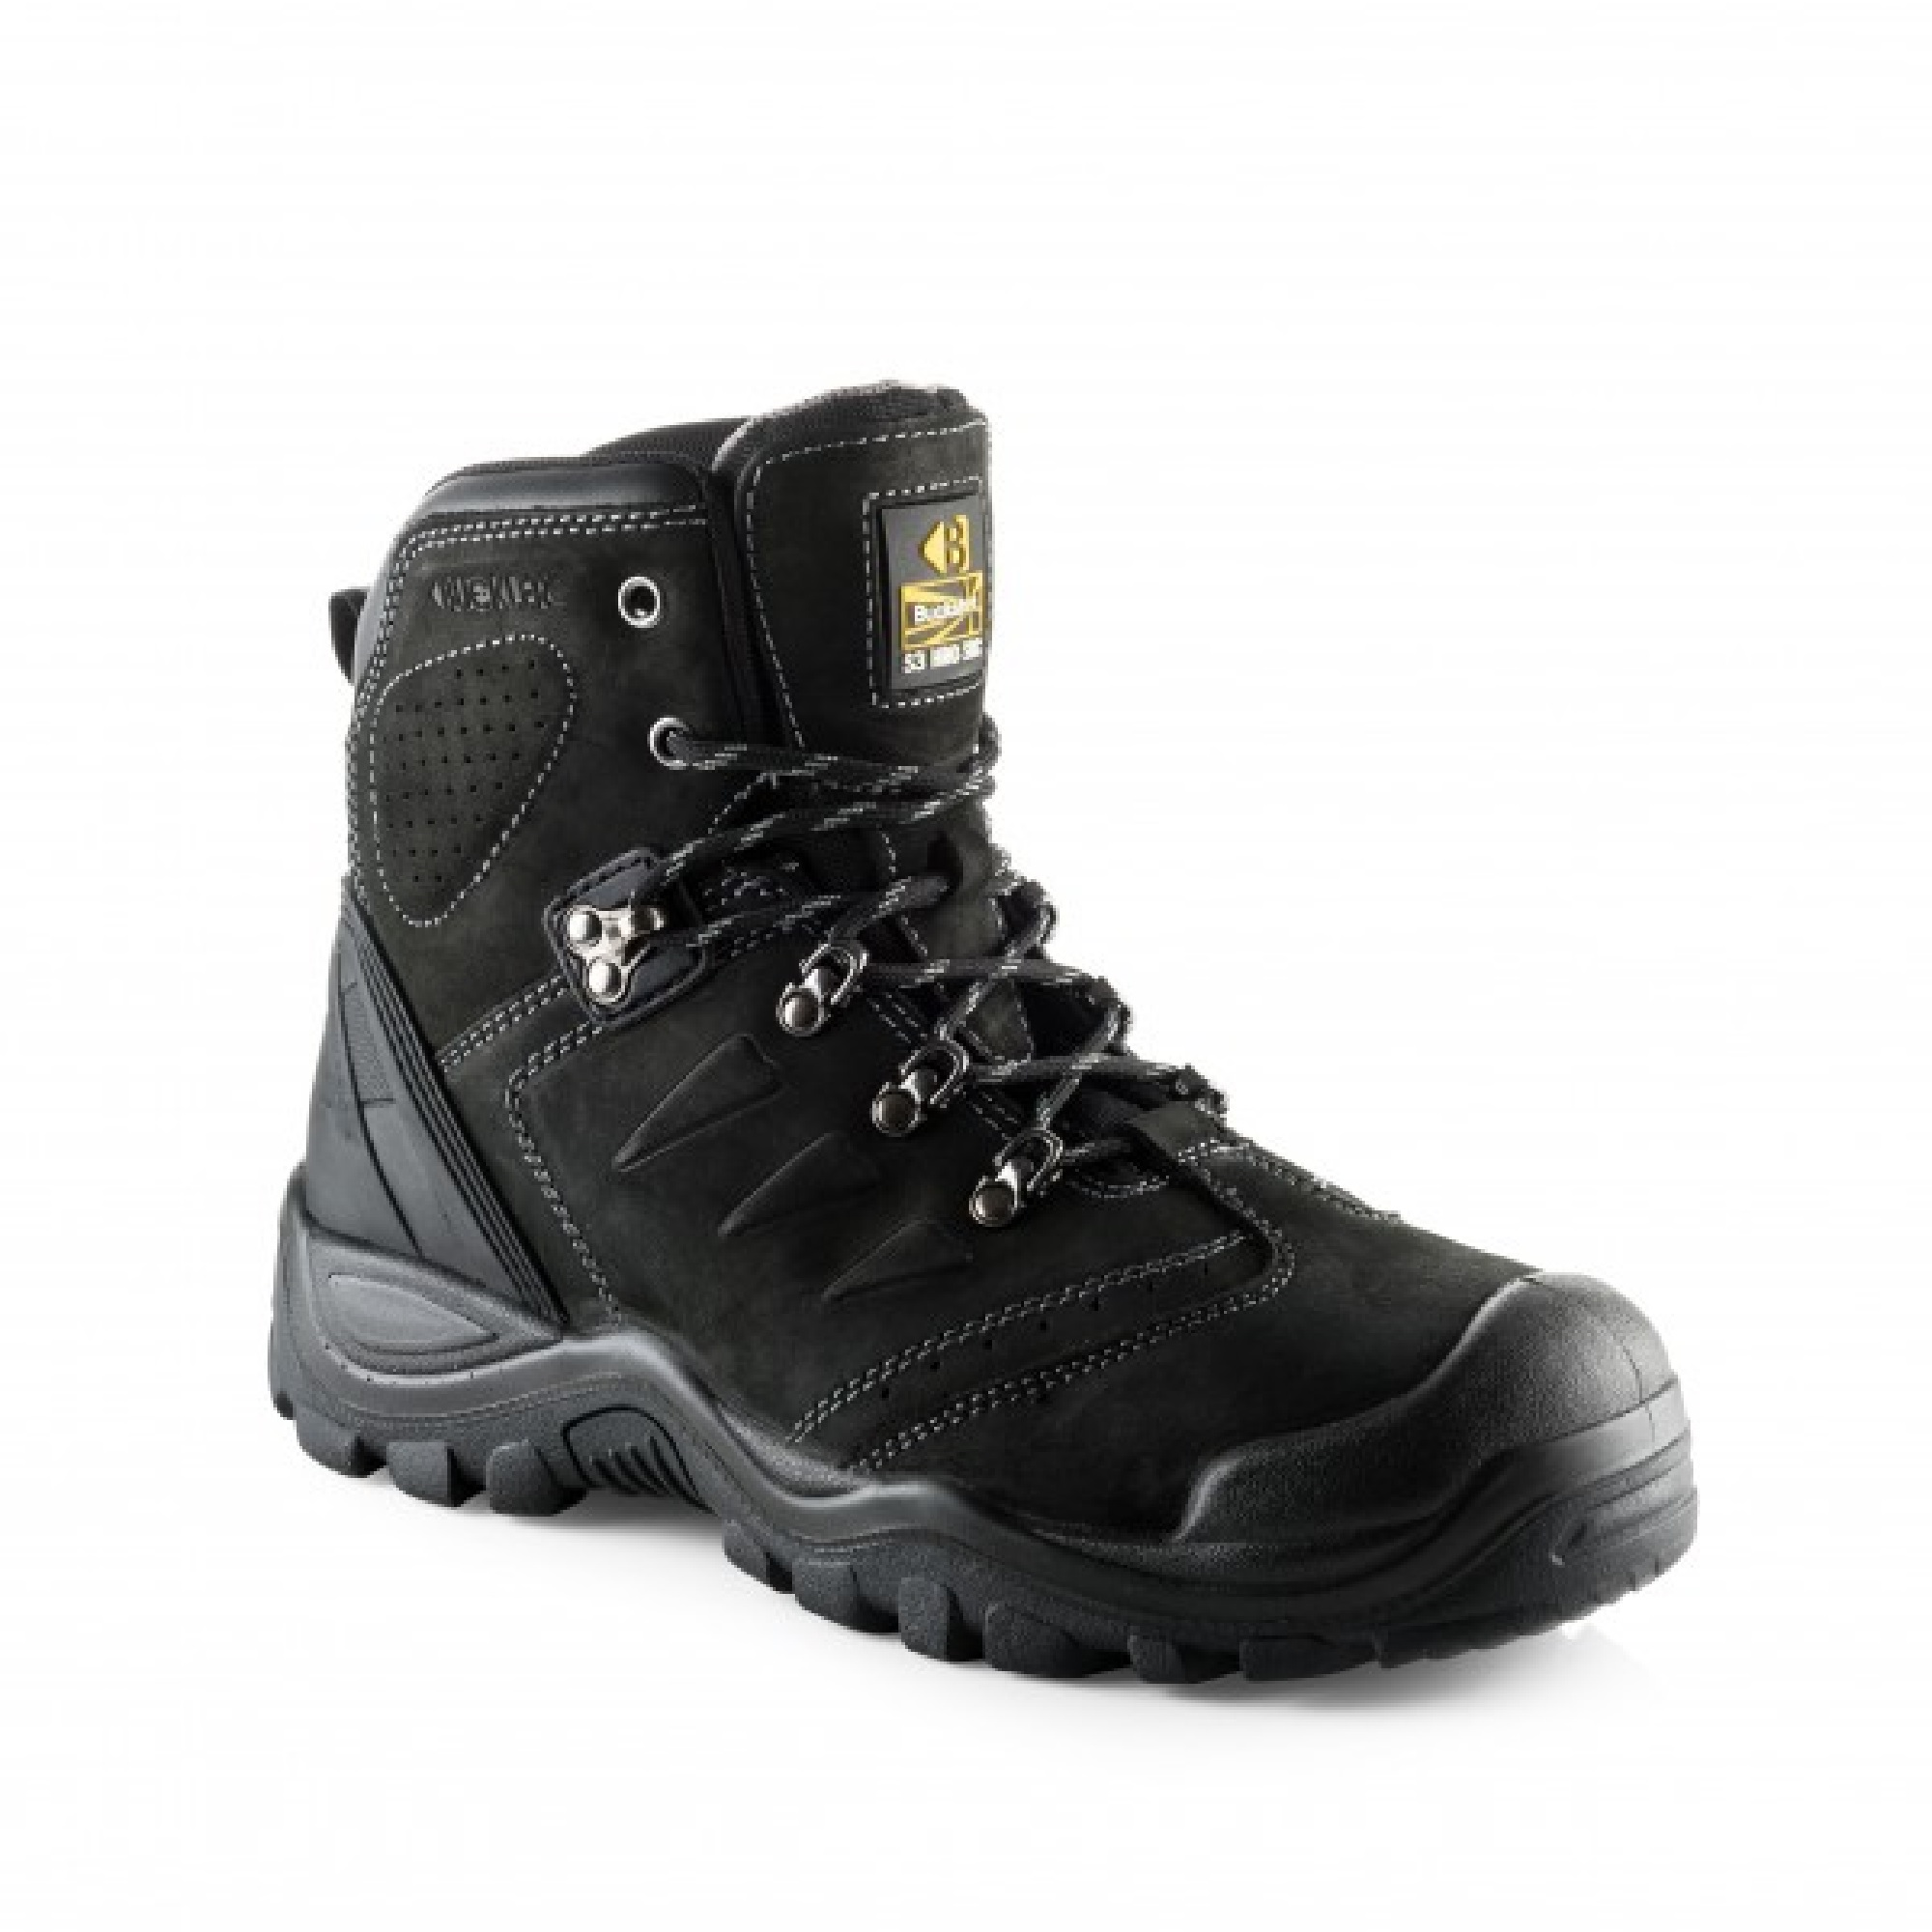 Black leather lace up BSH007BK safety boot with Buckler logo on the tongue and contrasting grey stitching